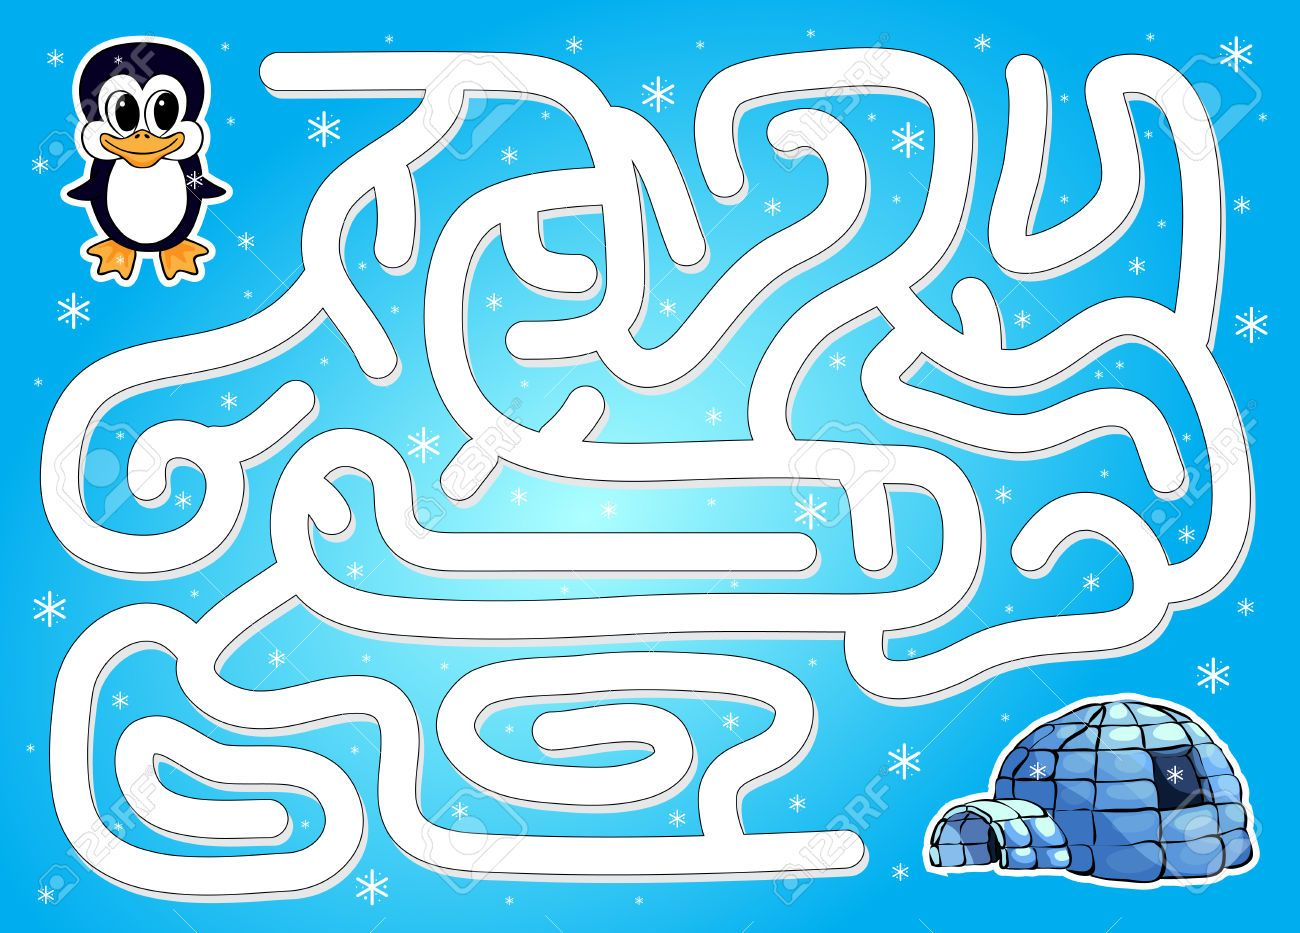 Help Penguin To Find Way To Igloo In A Winter